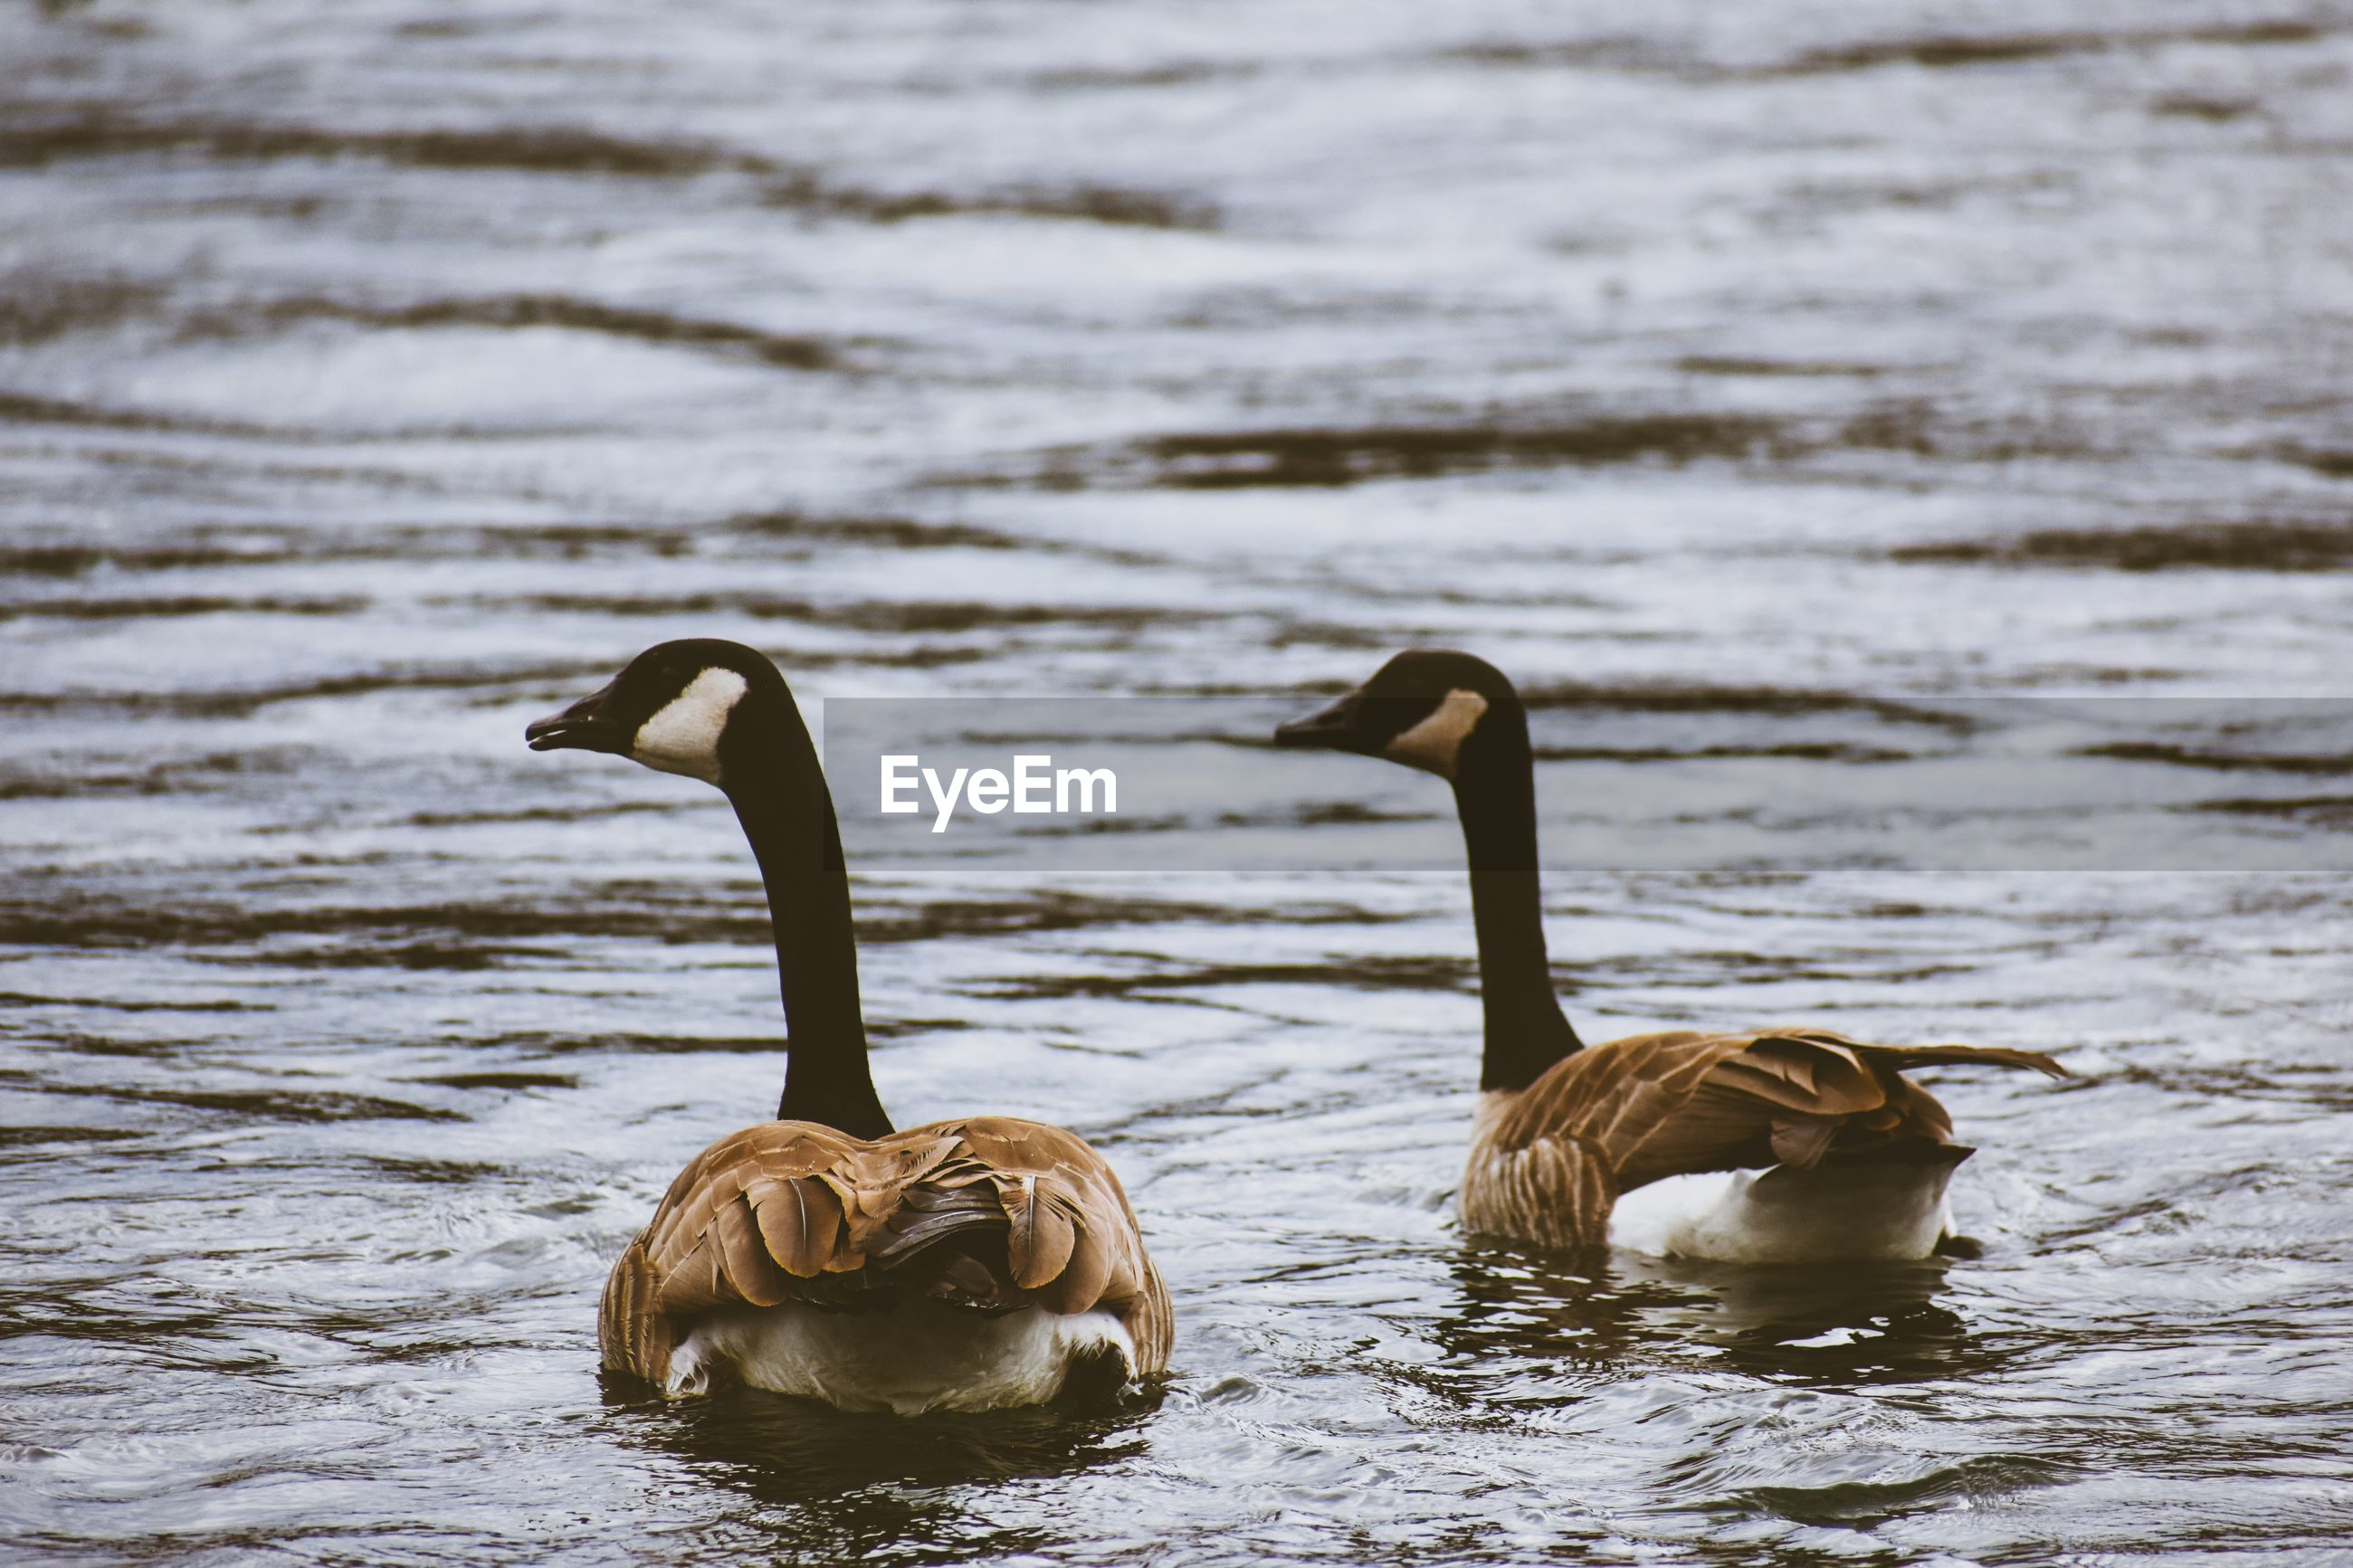 Geese swimming in river